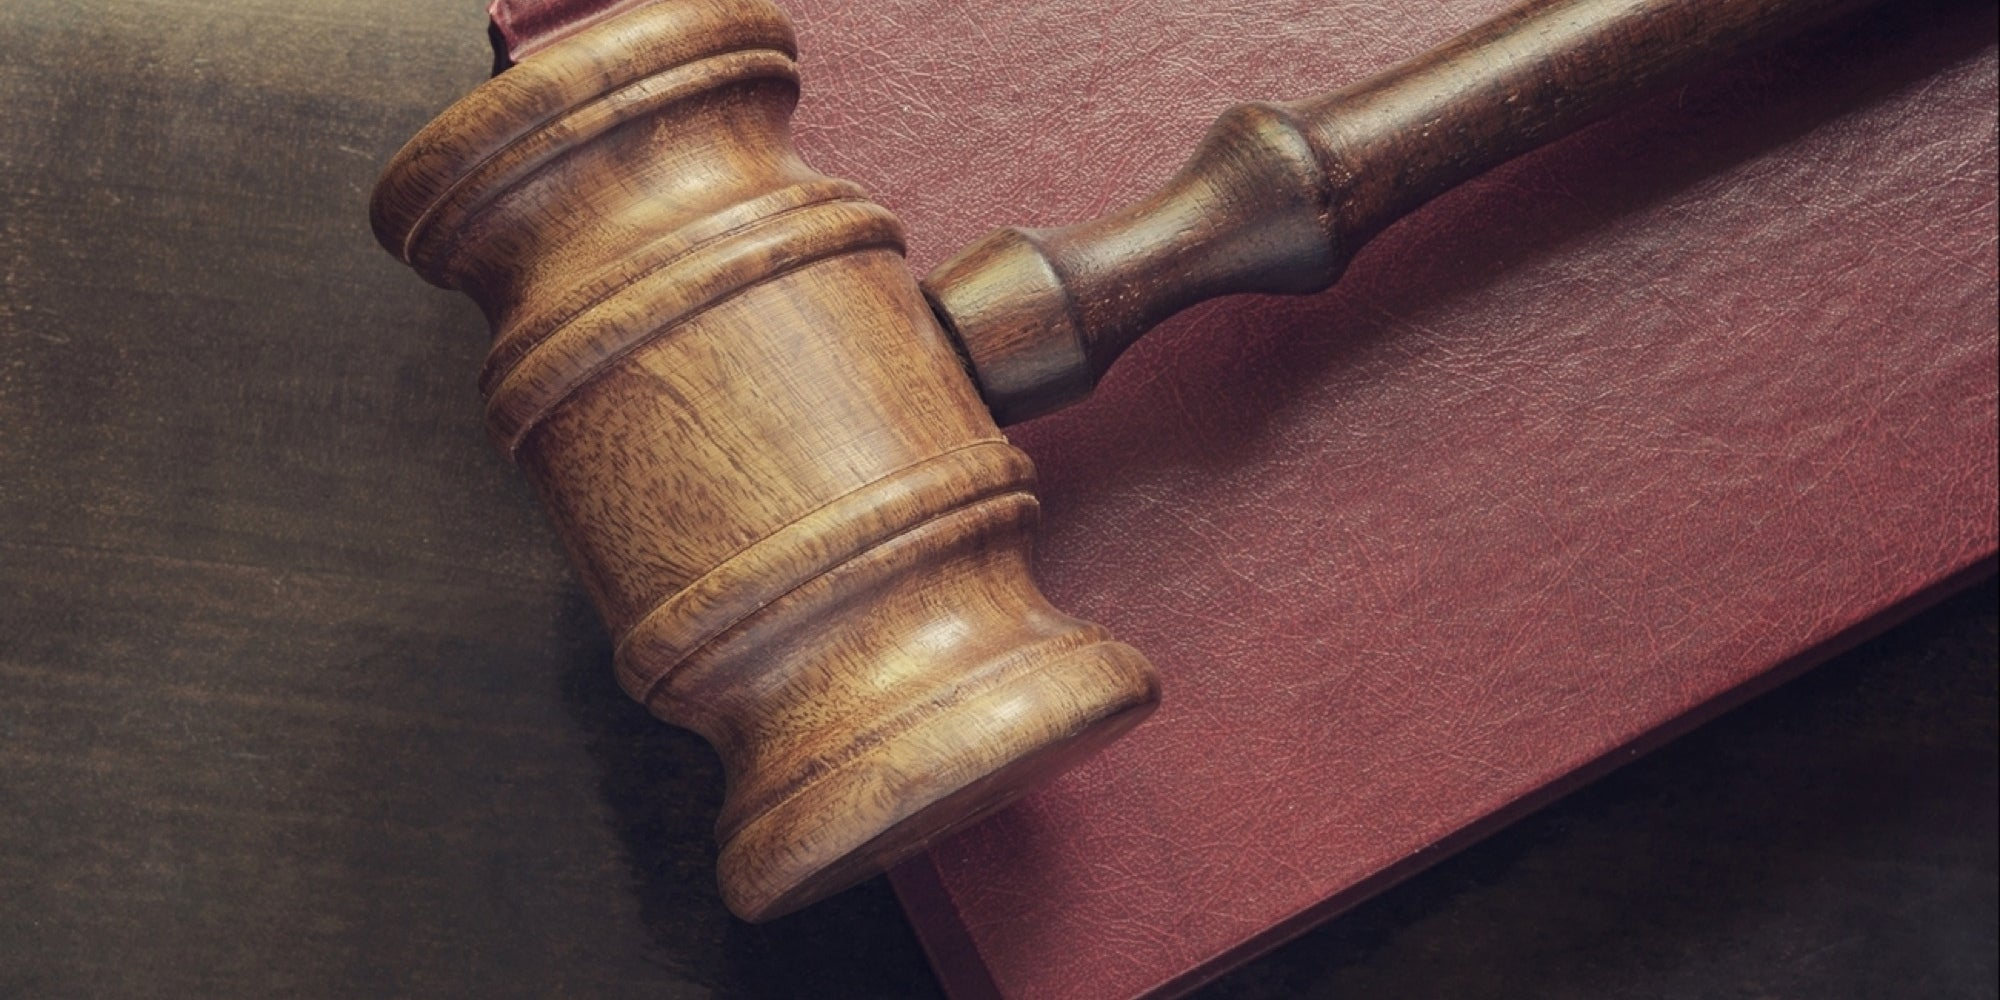 September Turned Out to be the Month of Landmark Judgements in India